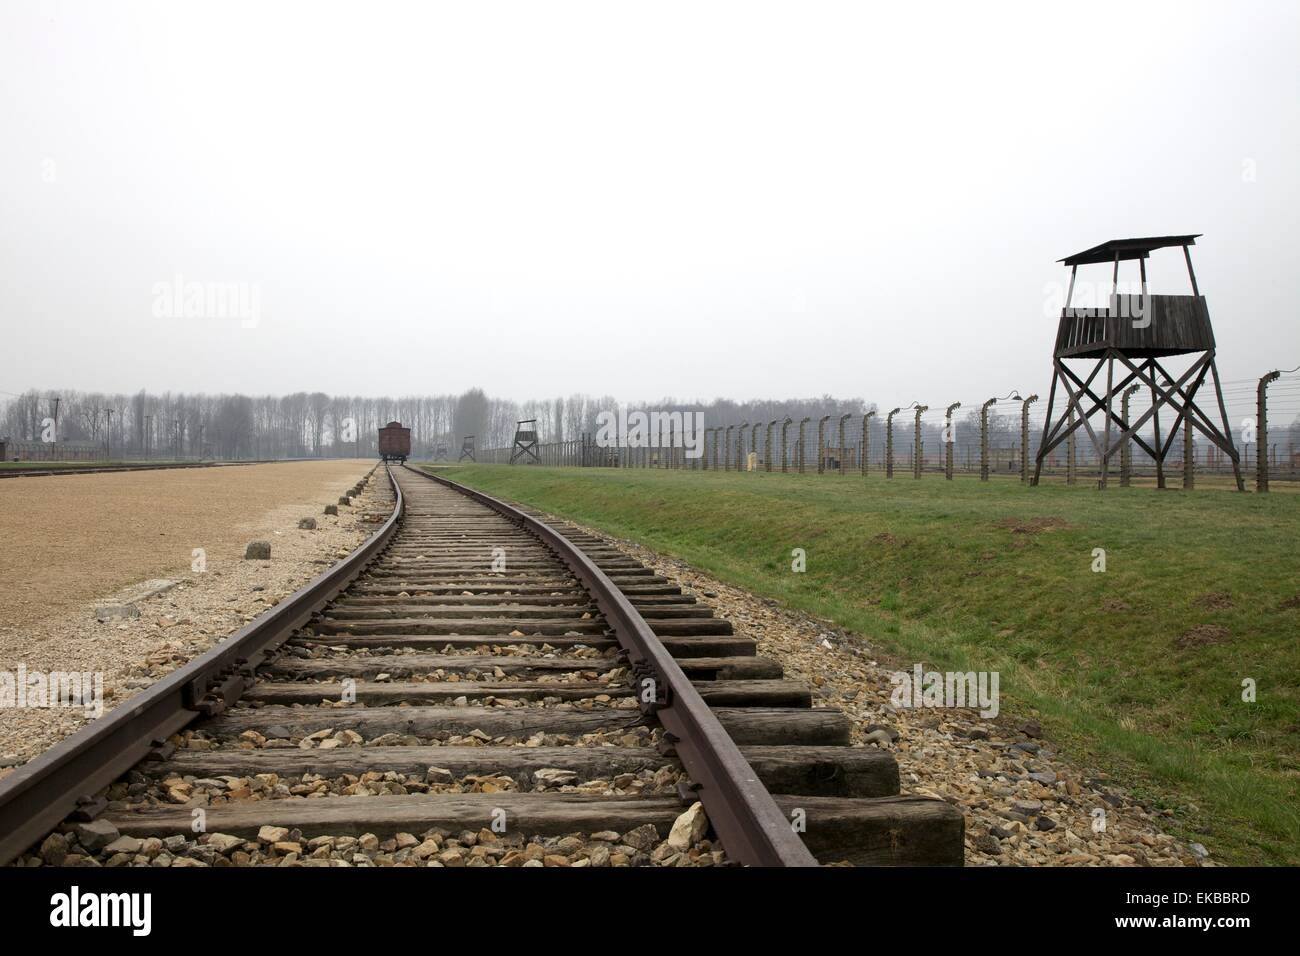 Auschwitz ll Birkenau Concentration Camp, UNESCO World Heritage Site, Brzezinka, Poland, Europe - Stock Image